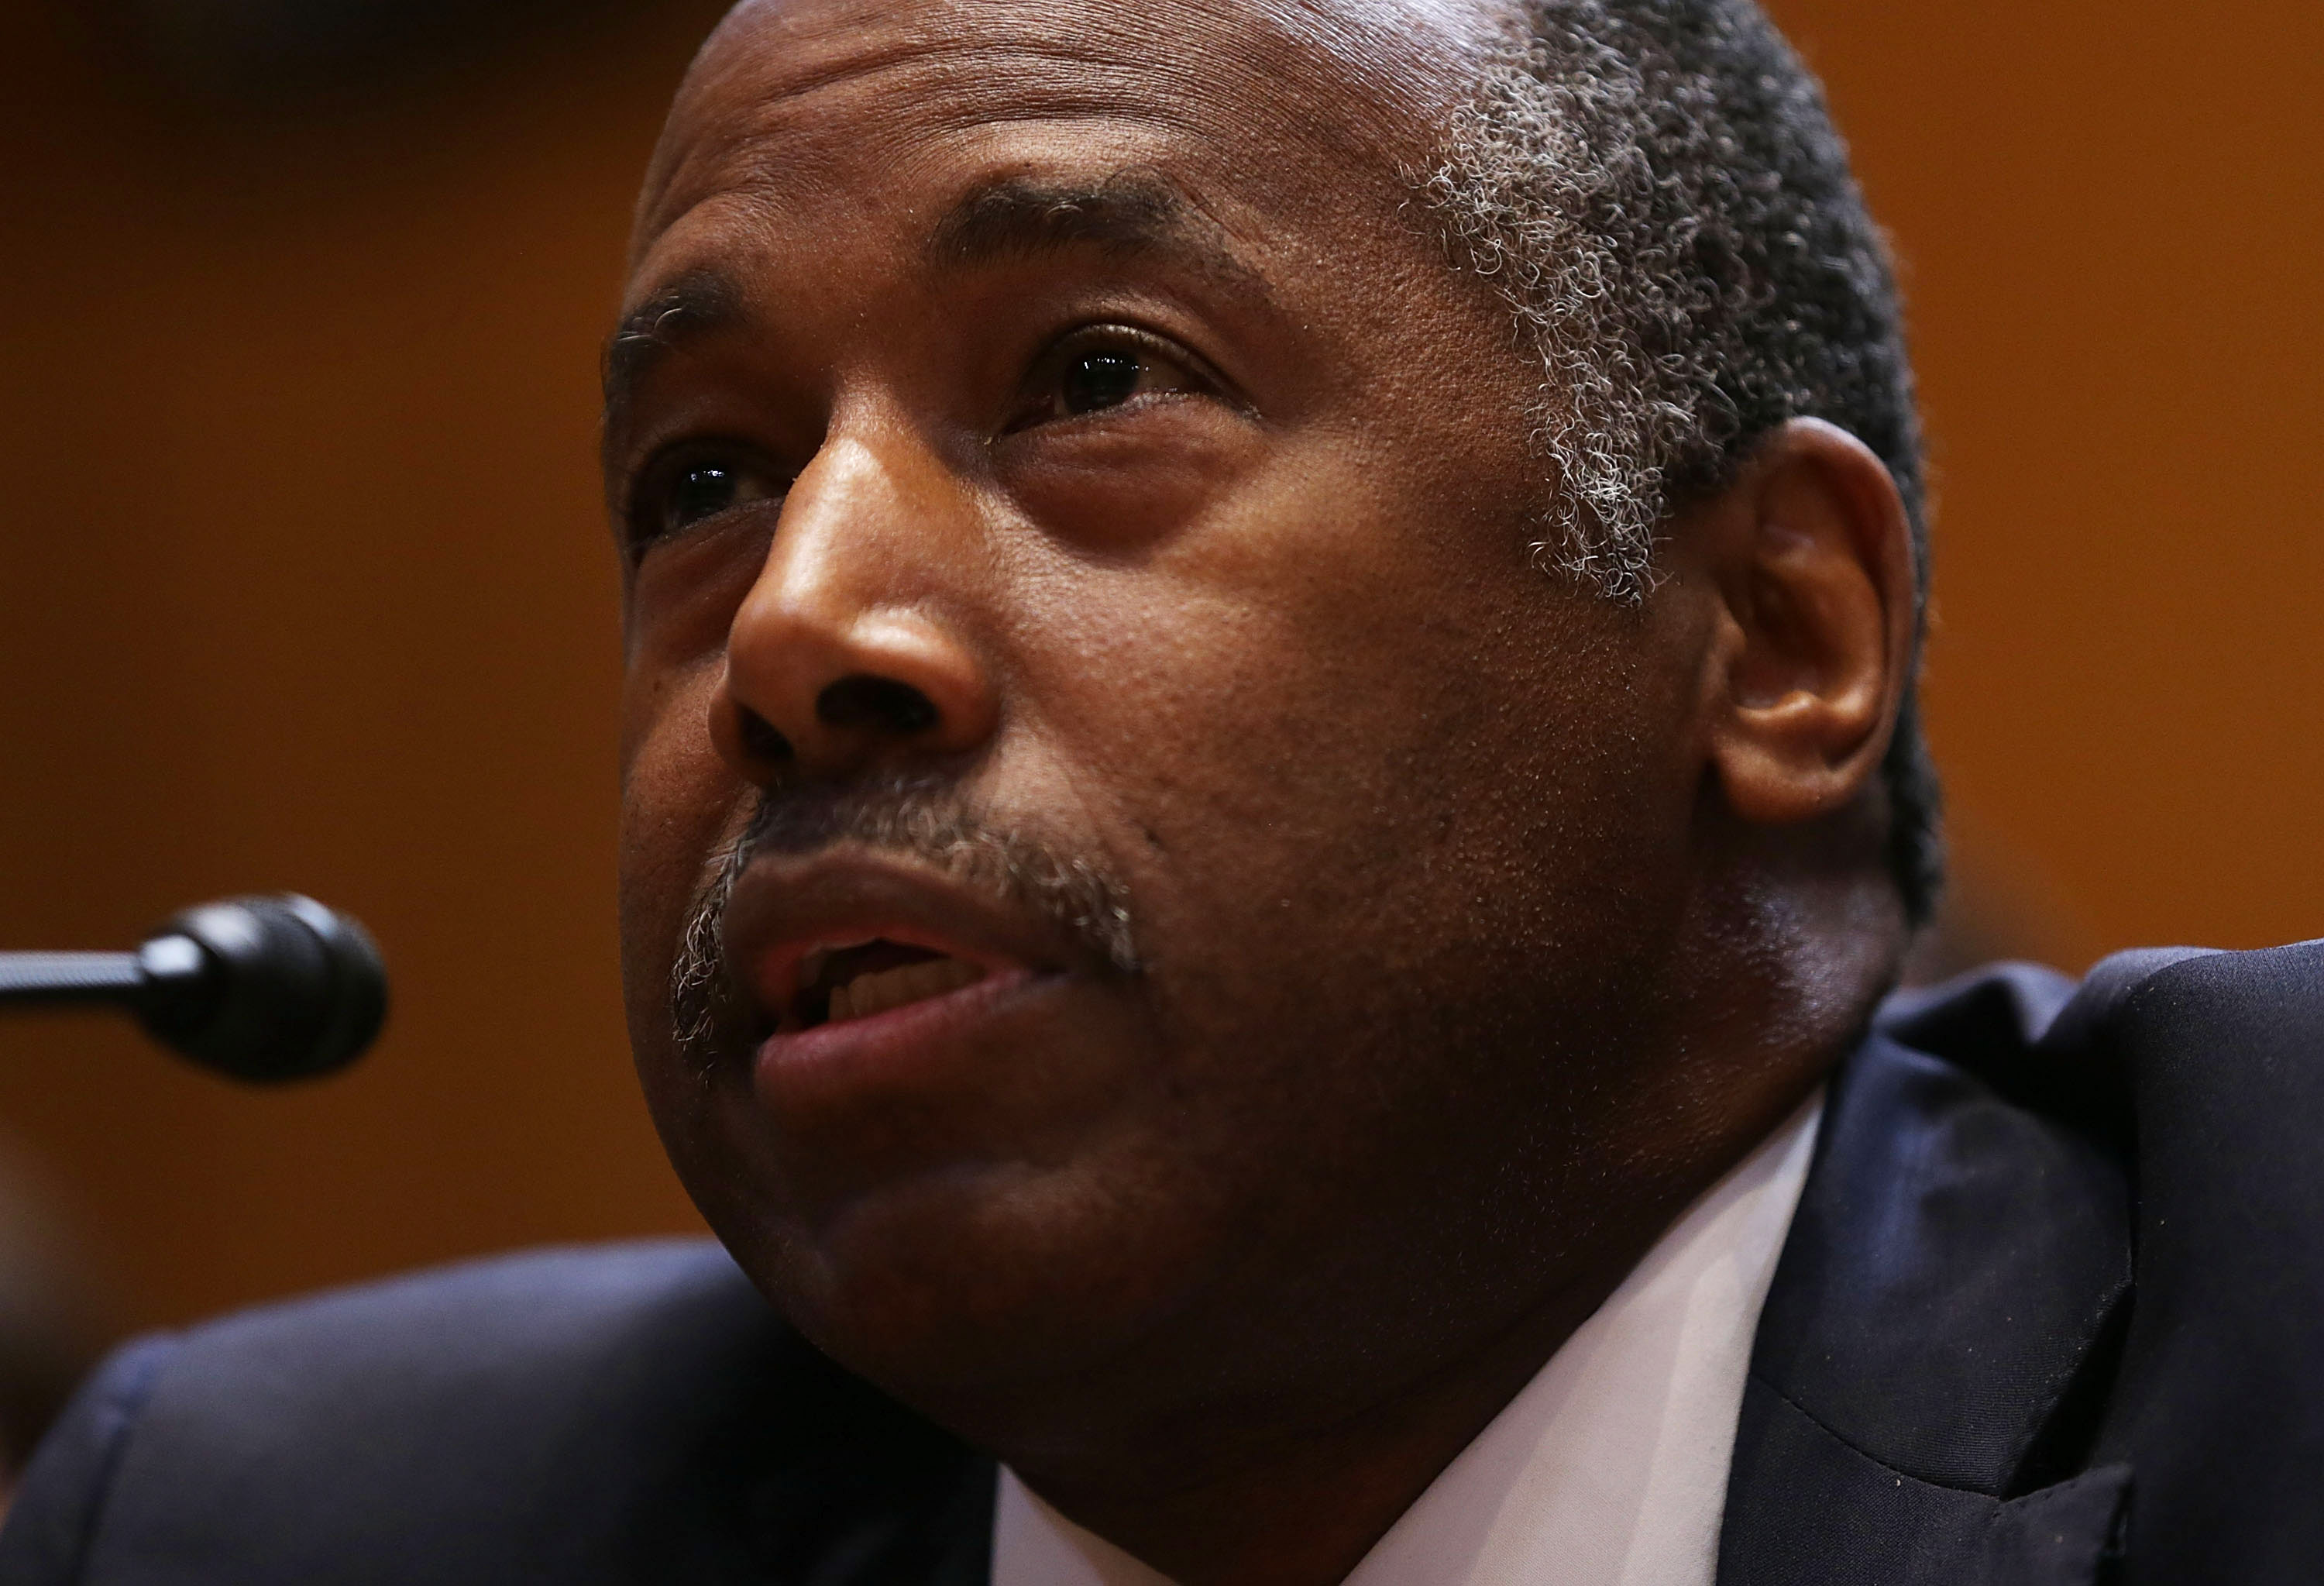 Housing and Urban Development Secretary Ben Carson testifies during a hearing before the Transportation, Housing and Urban Development, and Related Agencies Subcommittee of the Senate Appropriations Committee June 7, 2017 on Capitol Hill in Washington, DC.